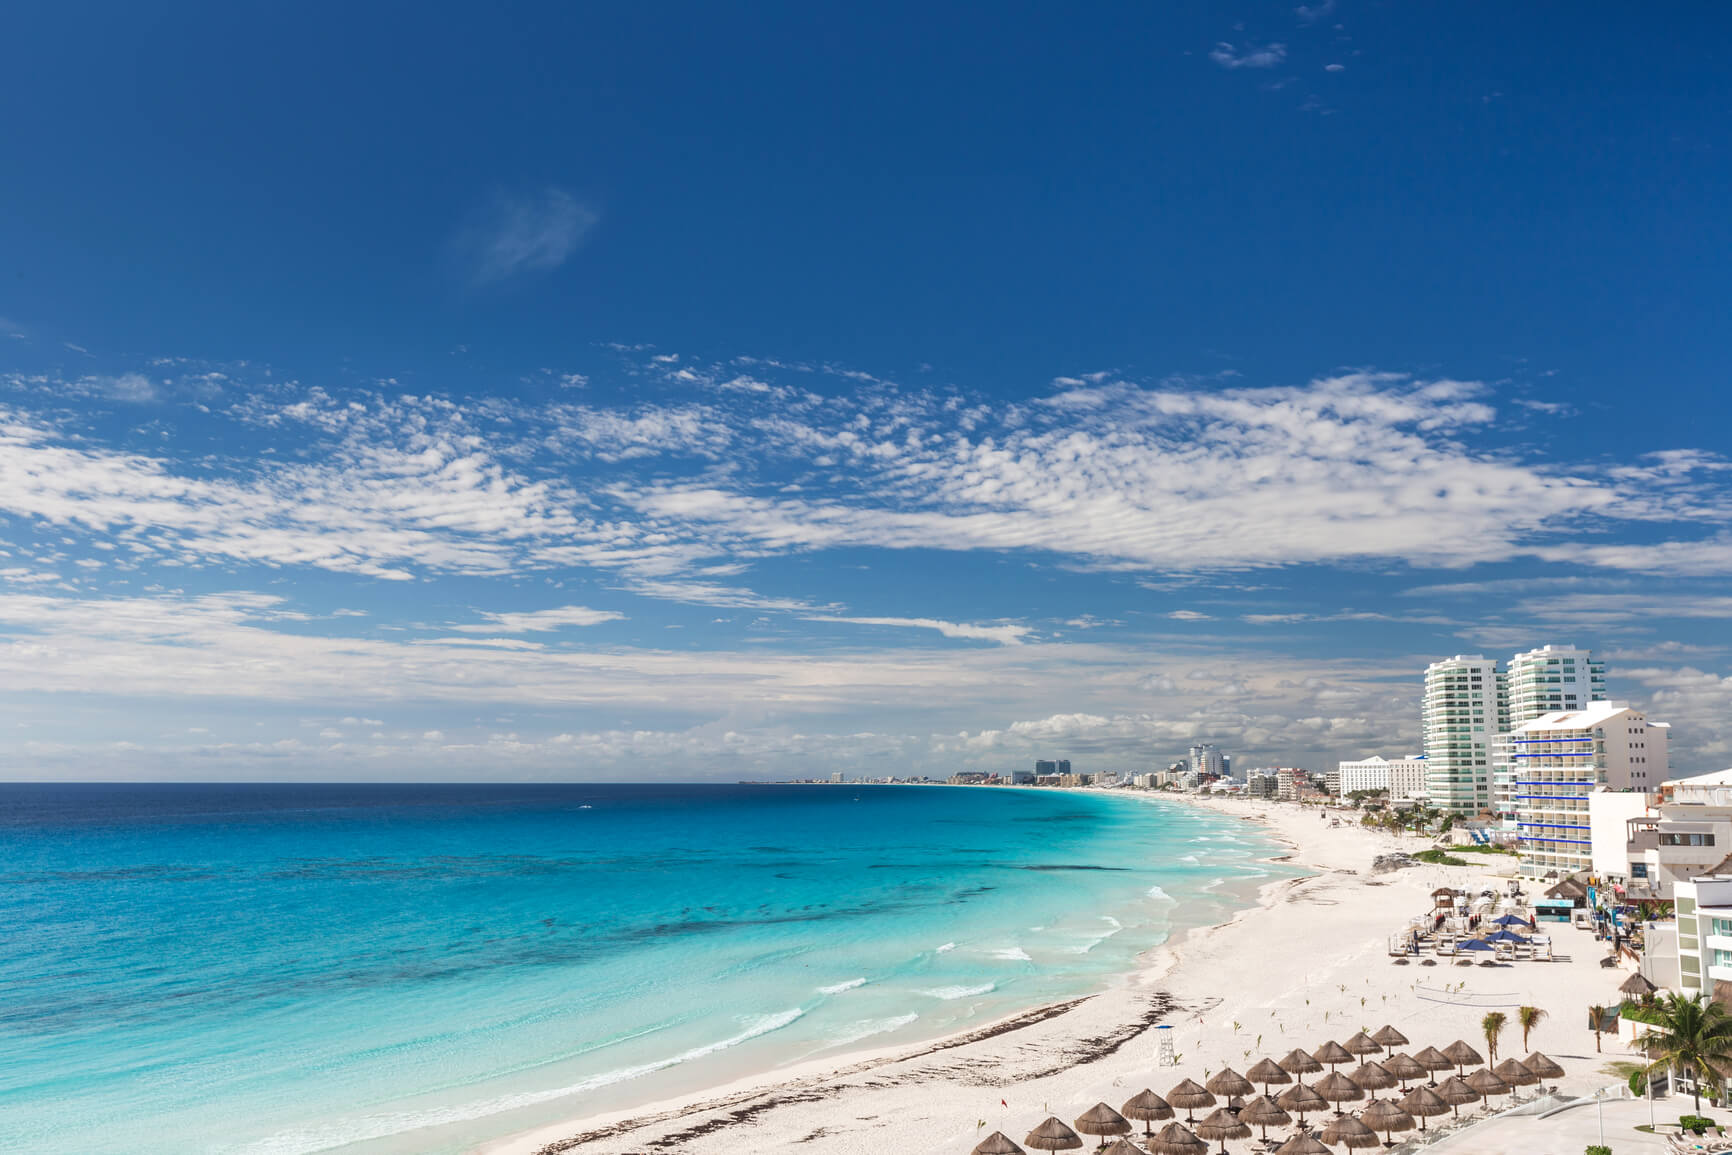 Newcastle, UK to Cancun, Mexico for only £319 roundtrip (Sep-Oct dates)